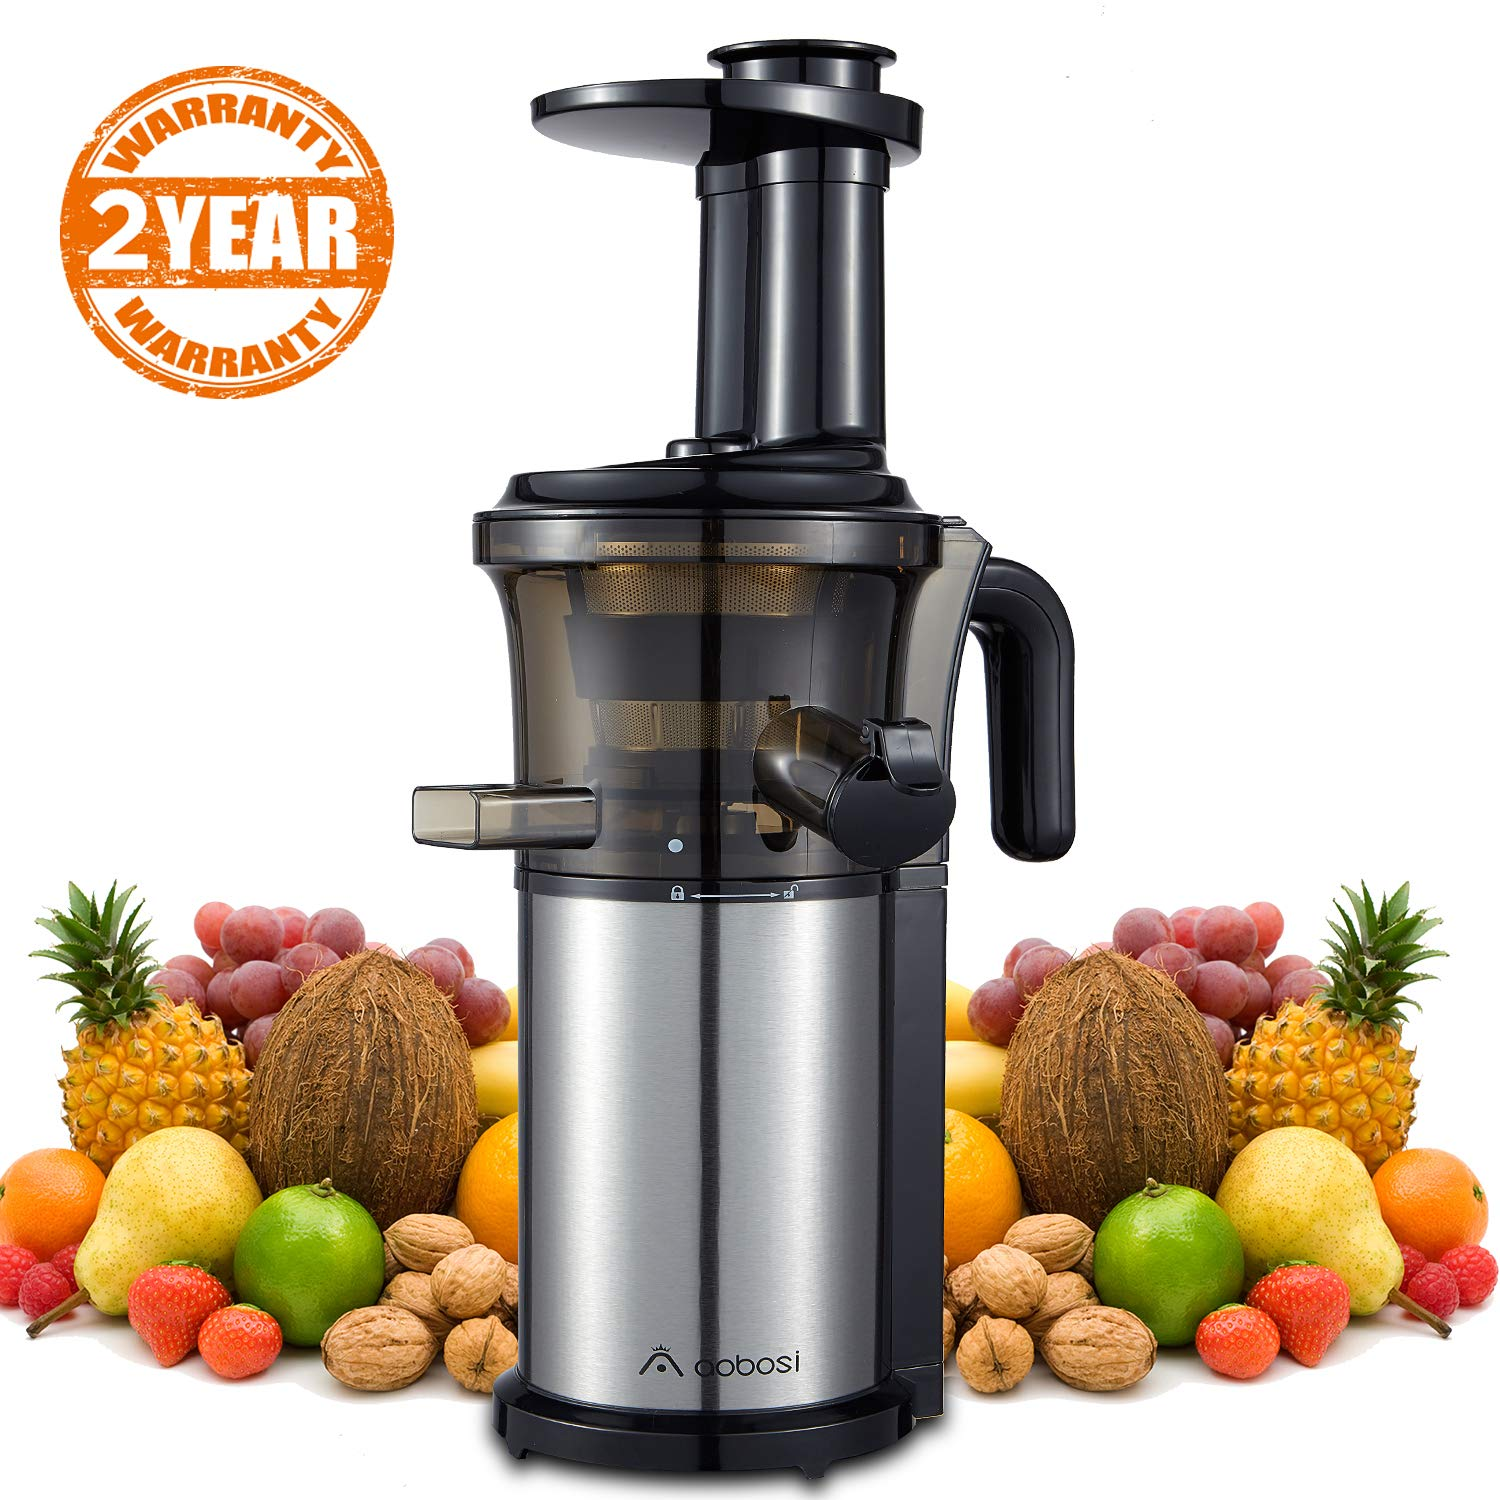 Aobosi Slow Masticating Juicer Extractor Compact Cold Press Juicer Machine with Portable Handle/Quiet Motor/Reverse Function/Juice Jug and Clean Brush for High Nutrient Fruit & Vegetable Juice SIBAKE U-SP-SJE-006